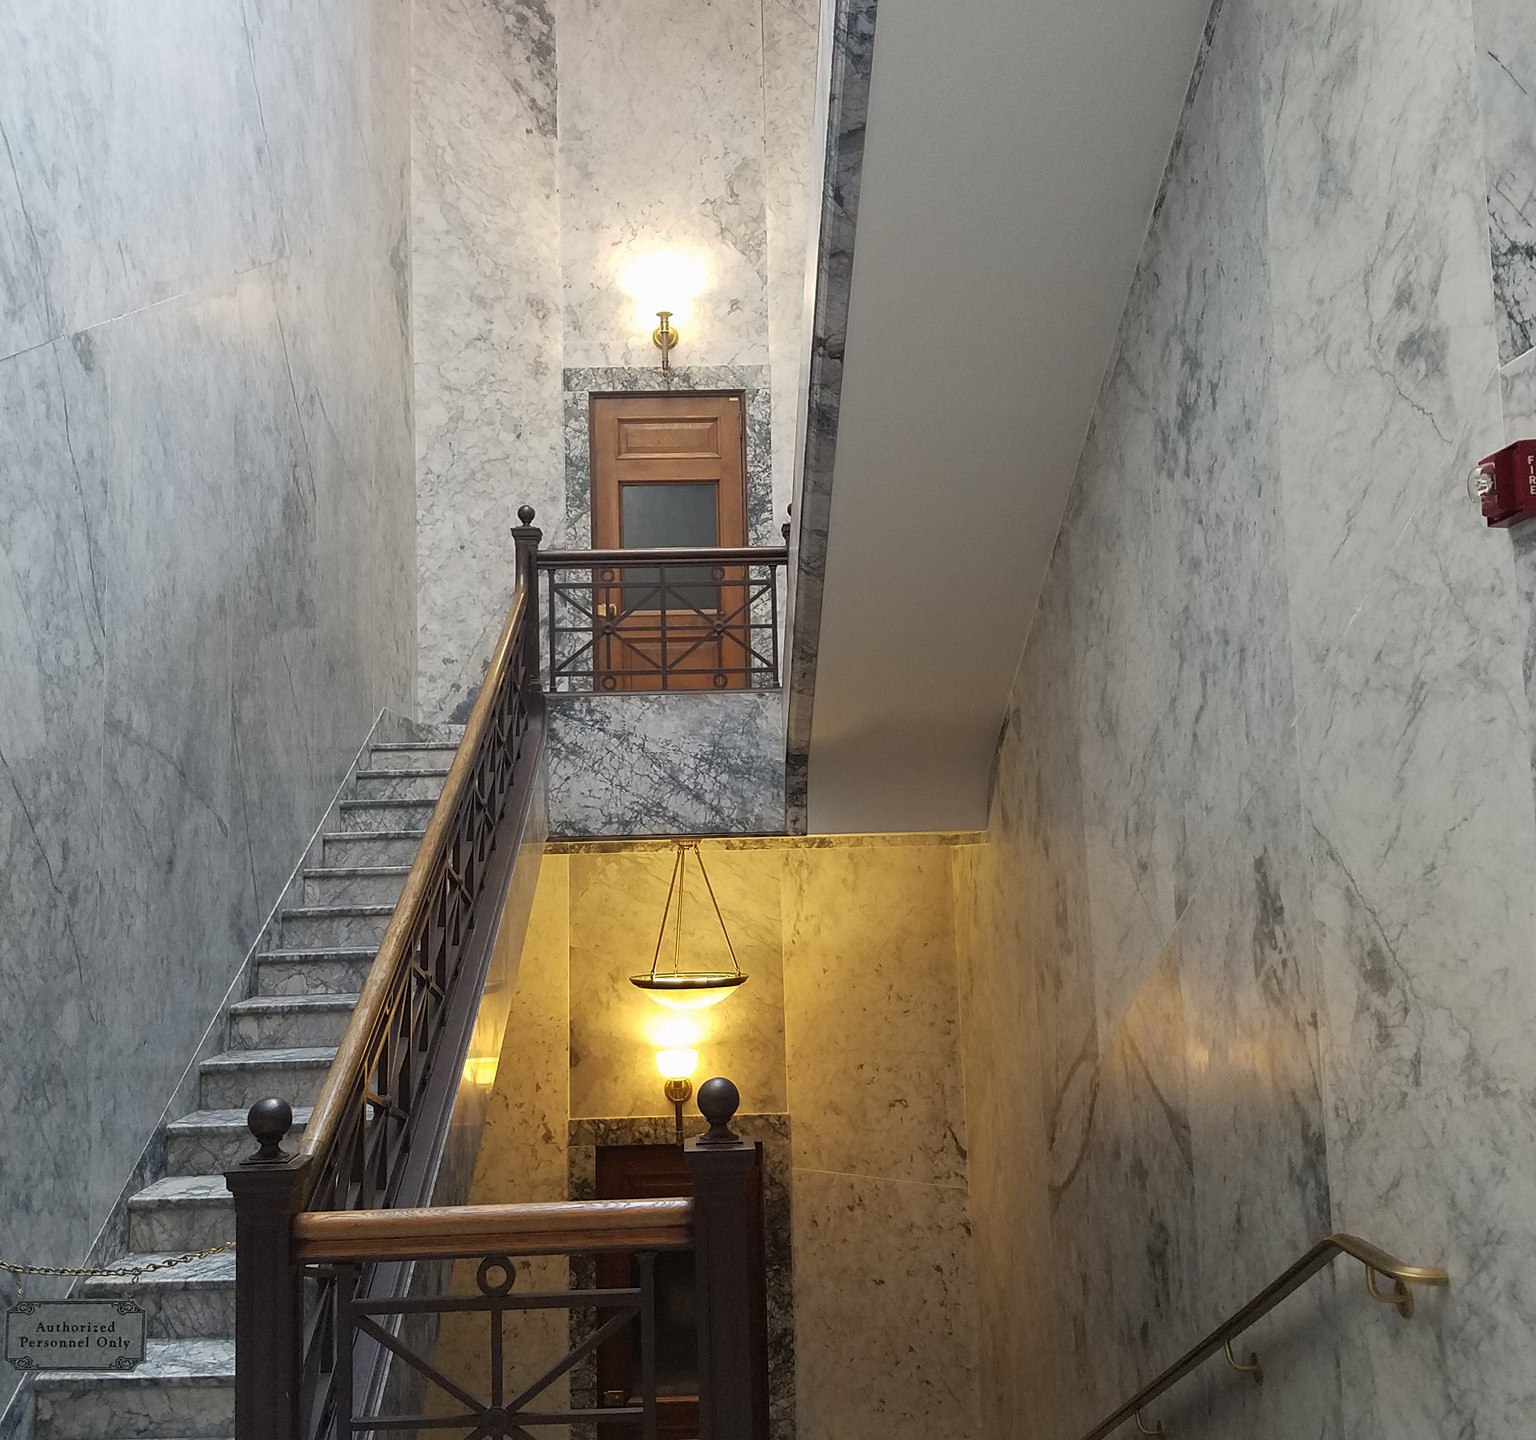 These stairwells are beautiful marble. Don't fall!